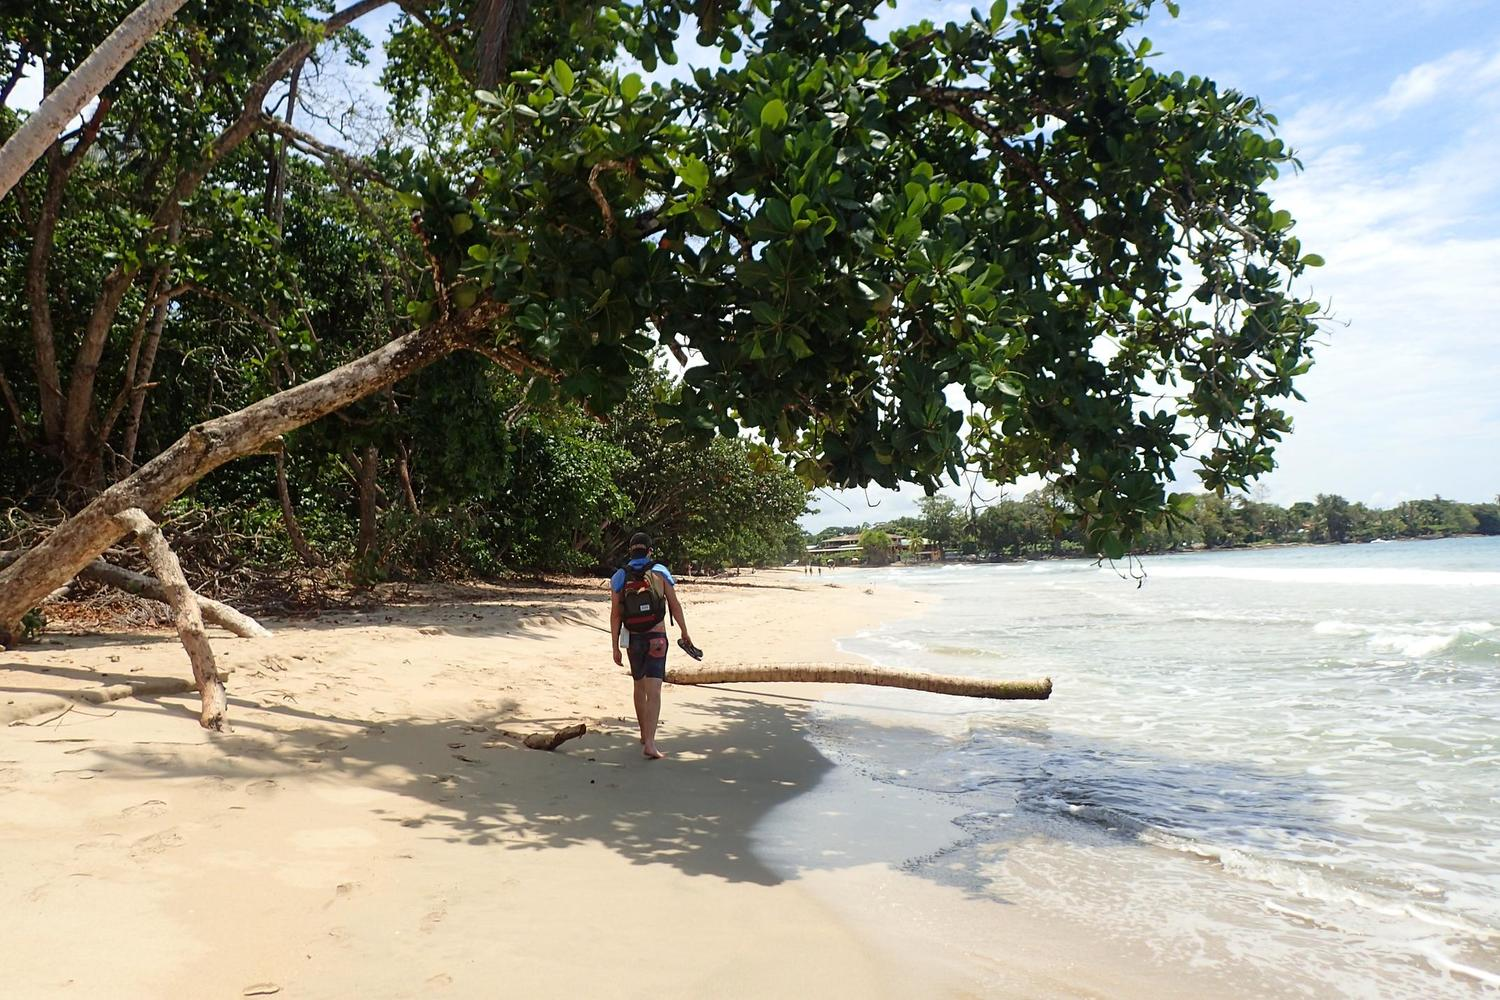 Walking the beaches of Cahuita